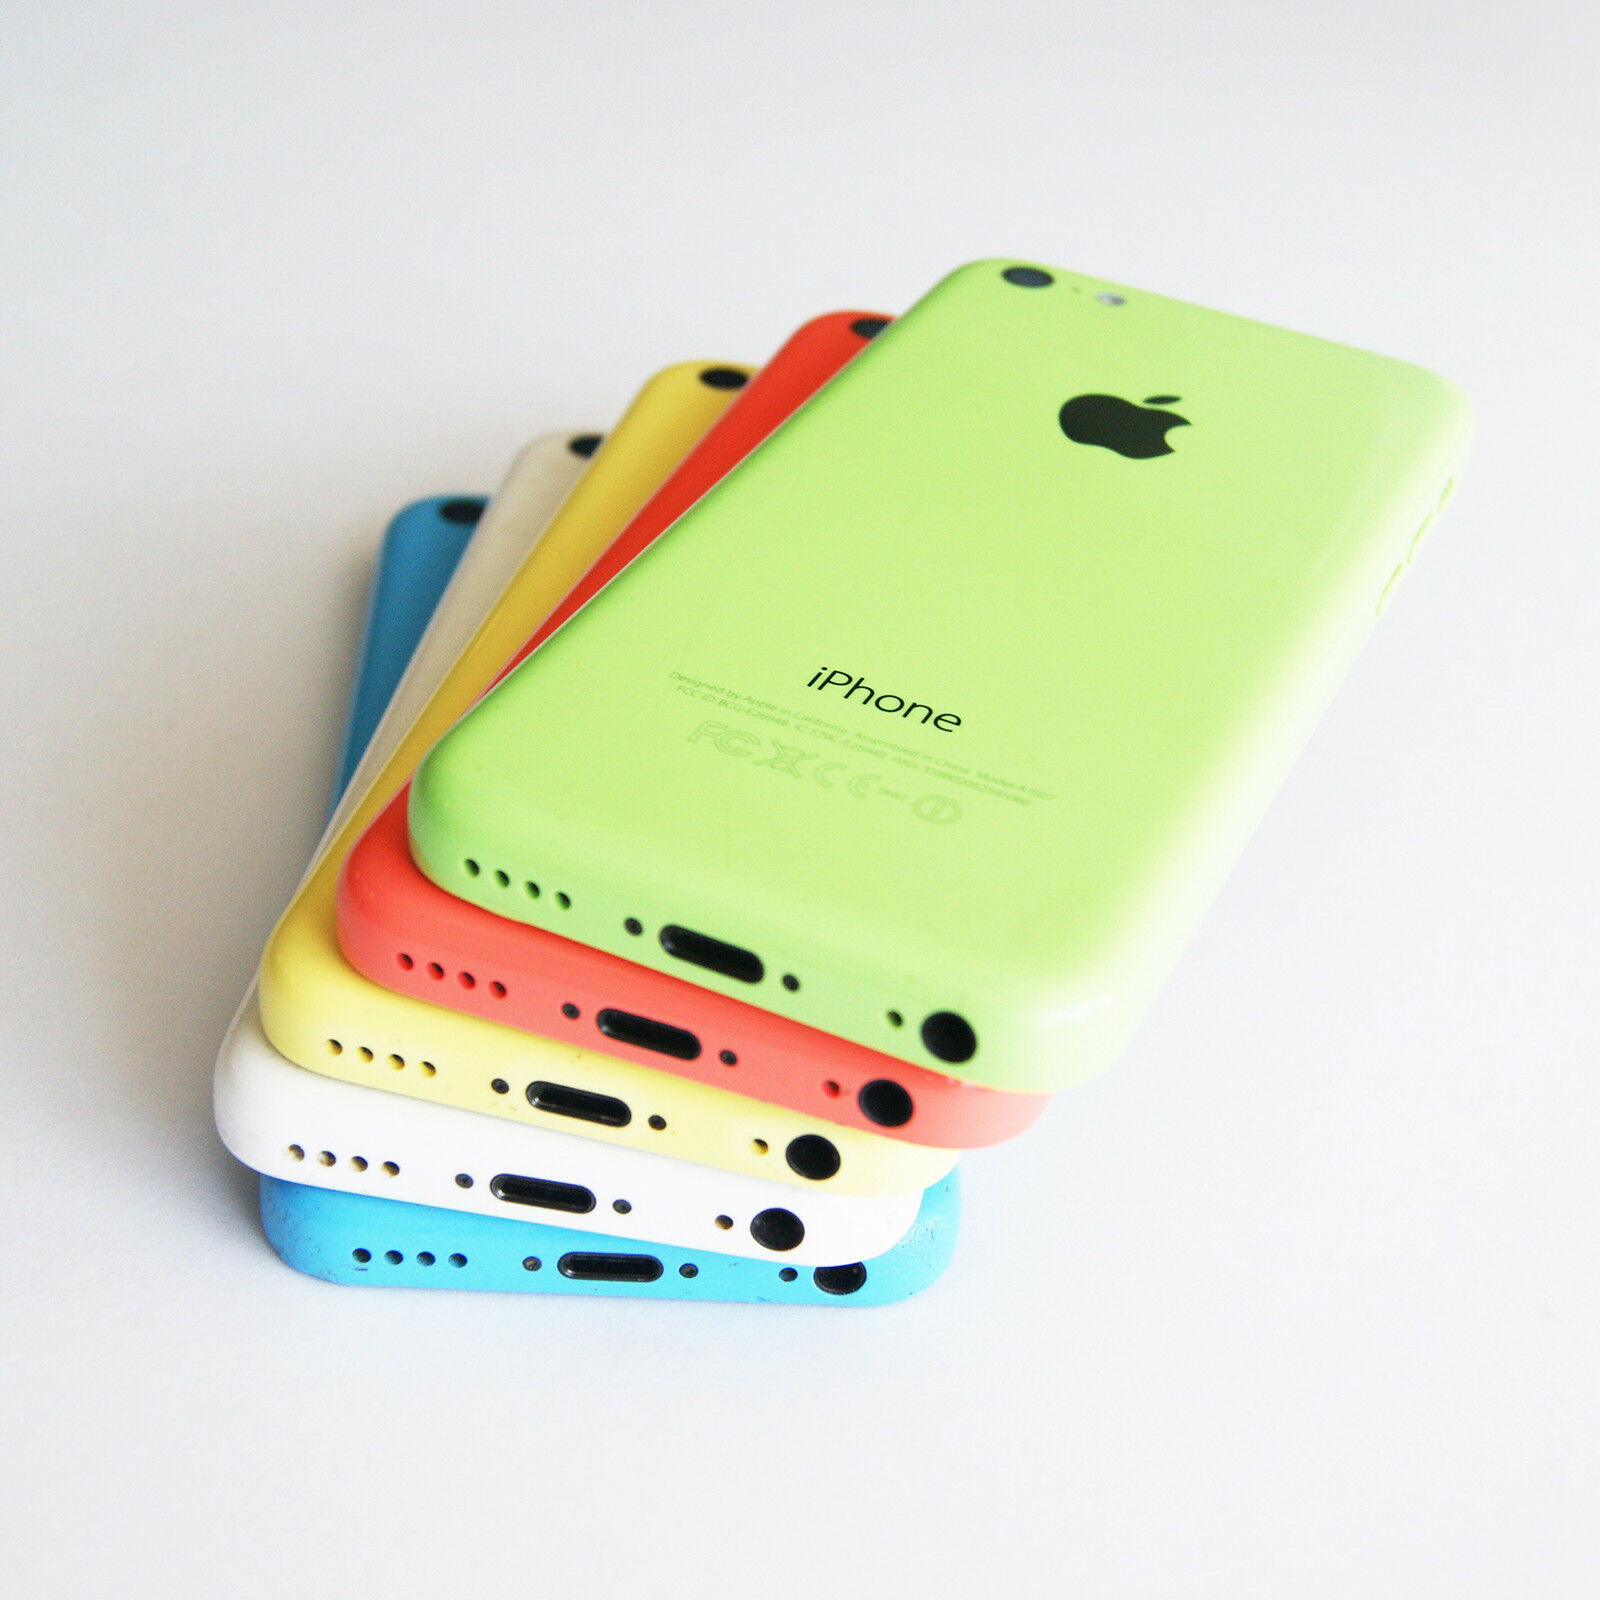 MANUFACTURER REFURBISHED APPLE IPHONE 5C 8GB / 16GB MULTIPLE COLOURS SMARTPHONE